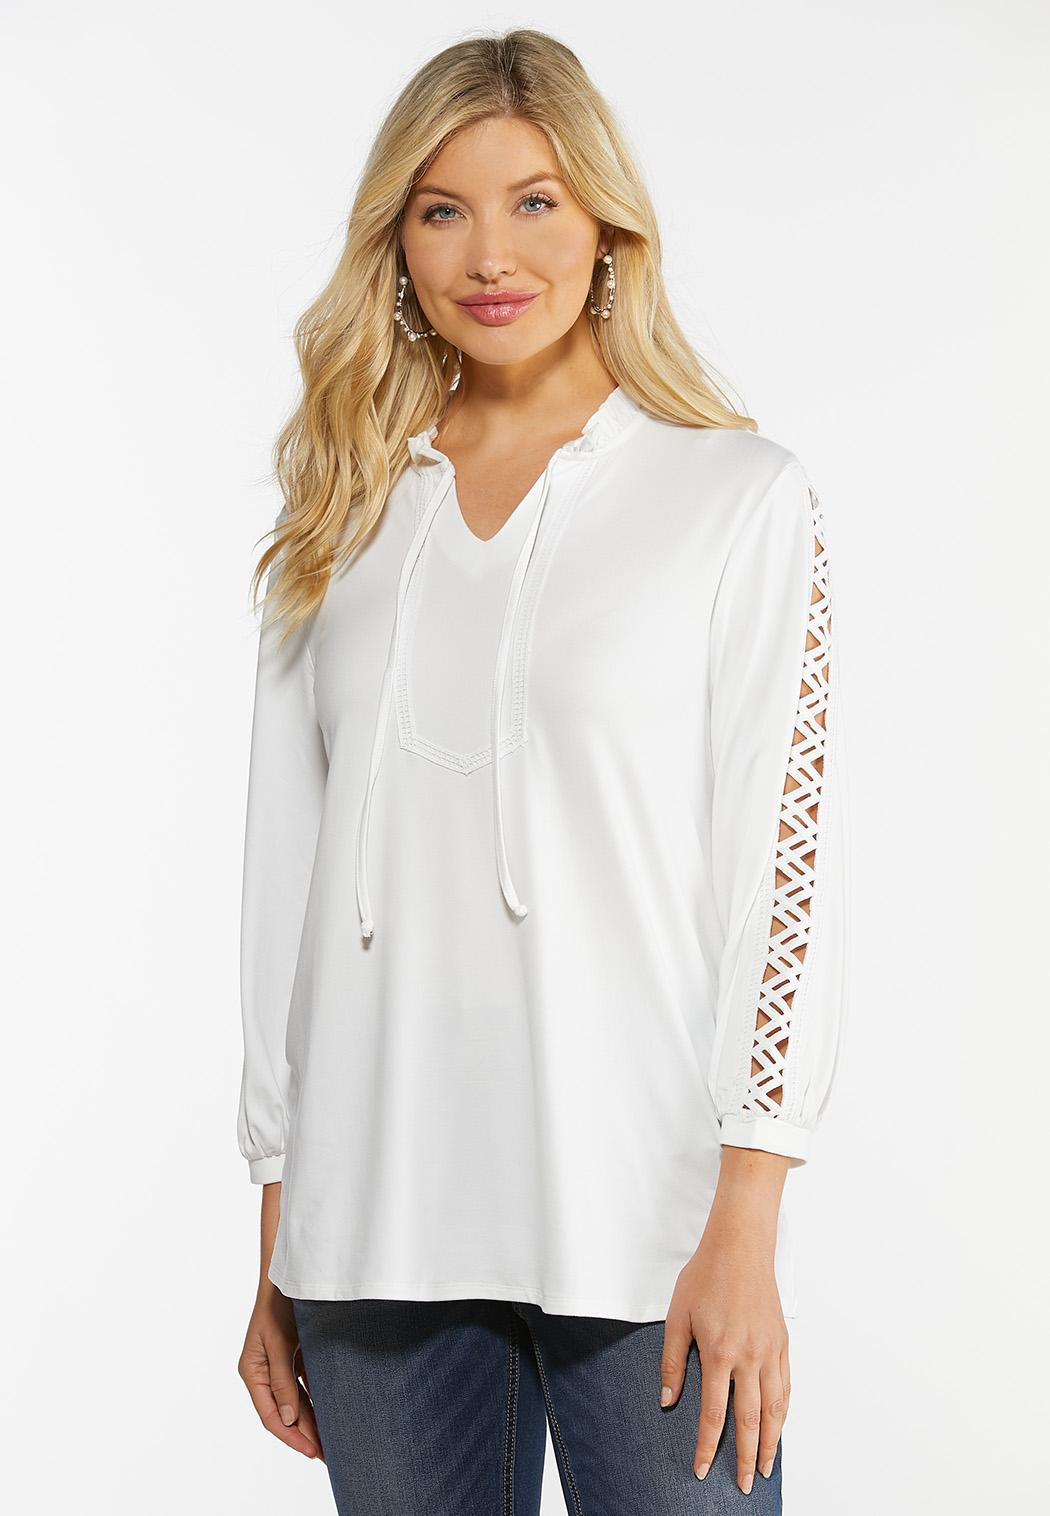 Zig Zag Cutout Sleeve Top